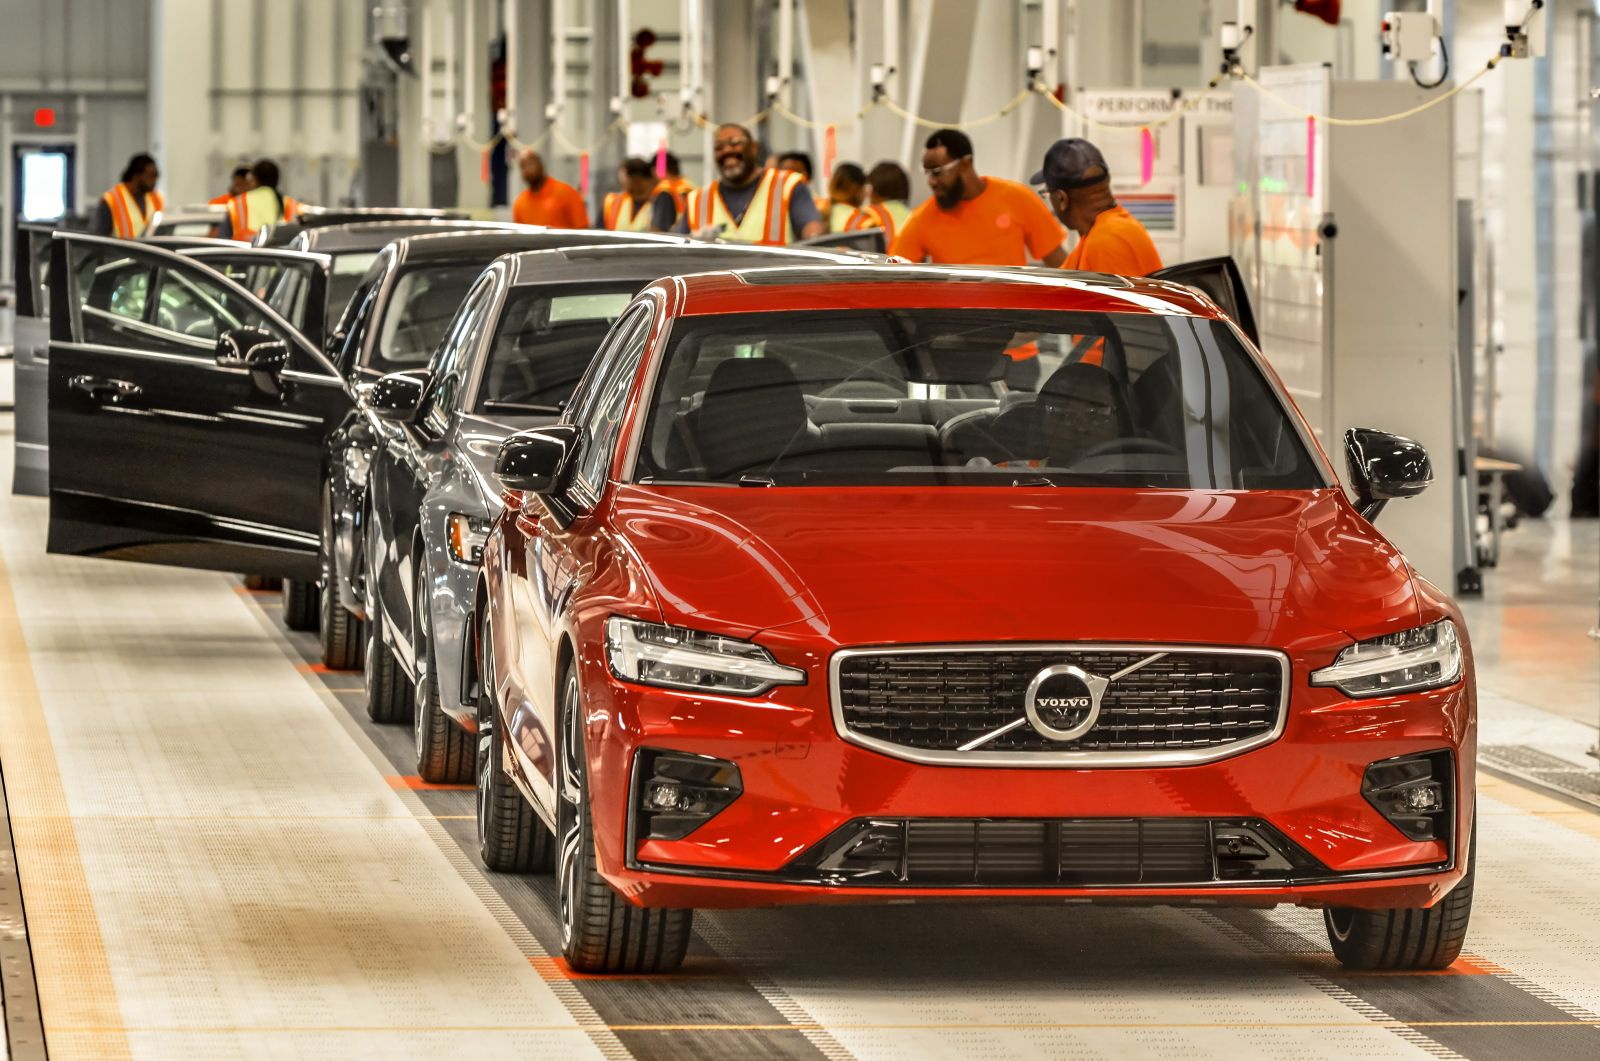 Volvo Cars produces S60 sedans at its plant near Ridgeville. (Photo/Volvo Cars)